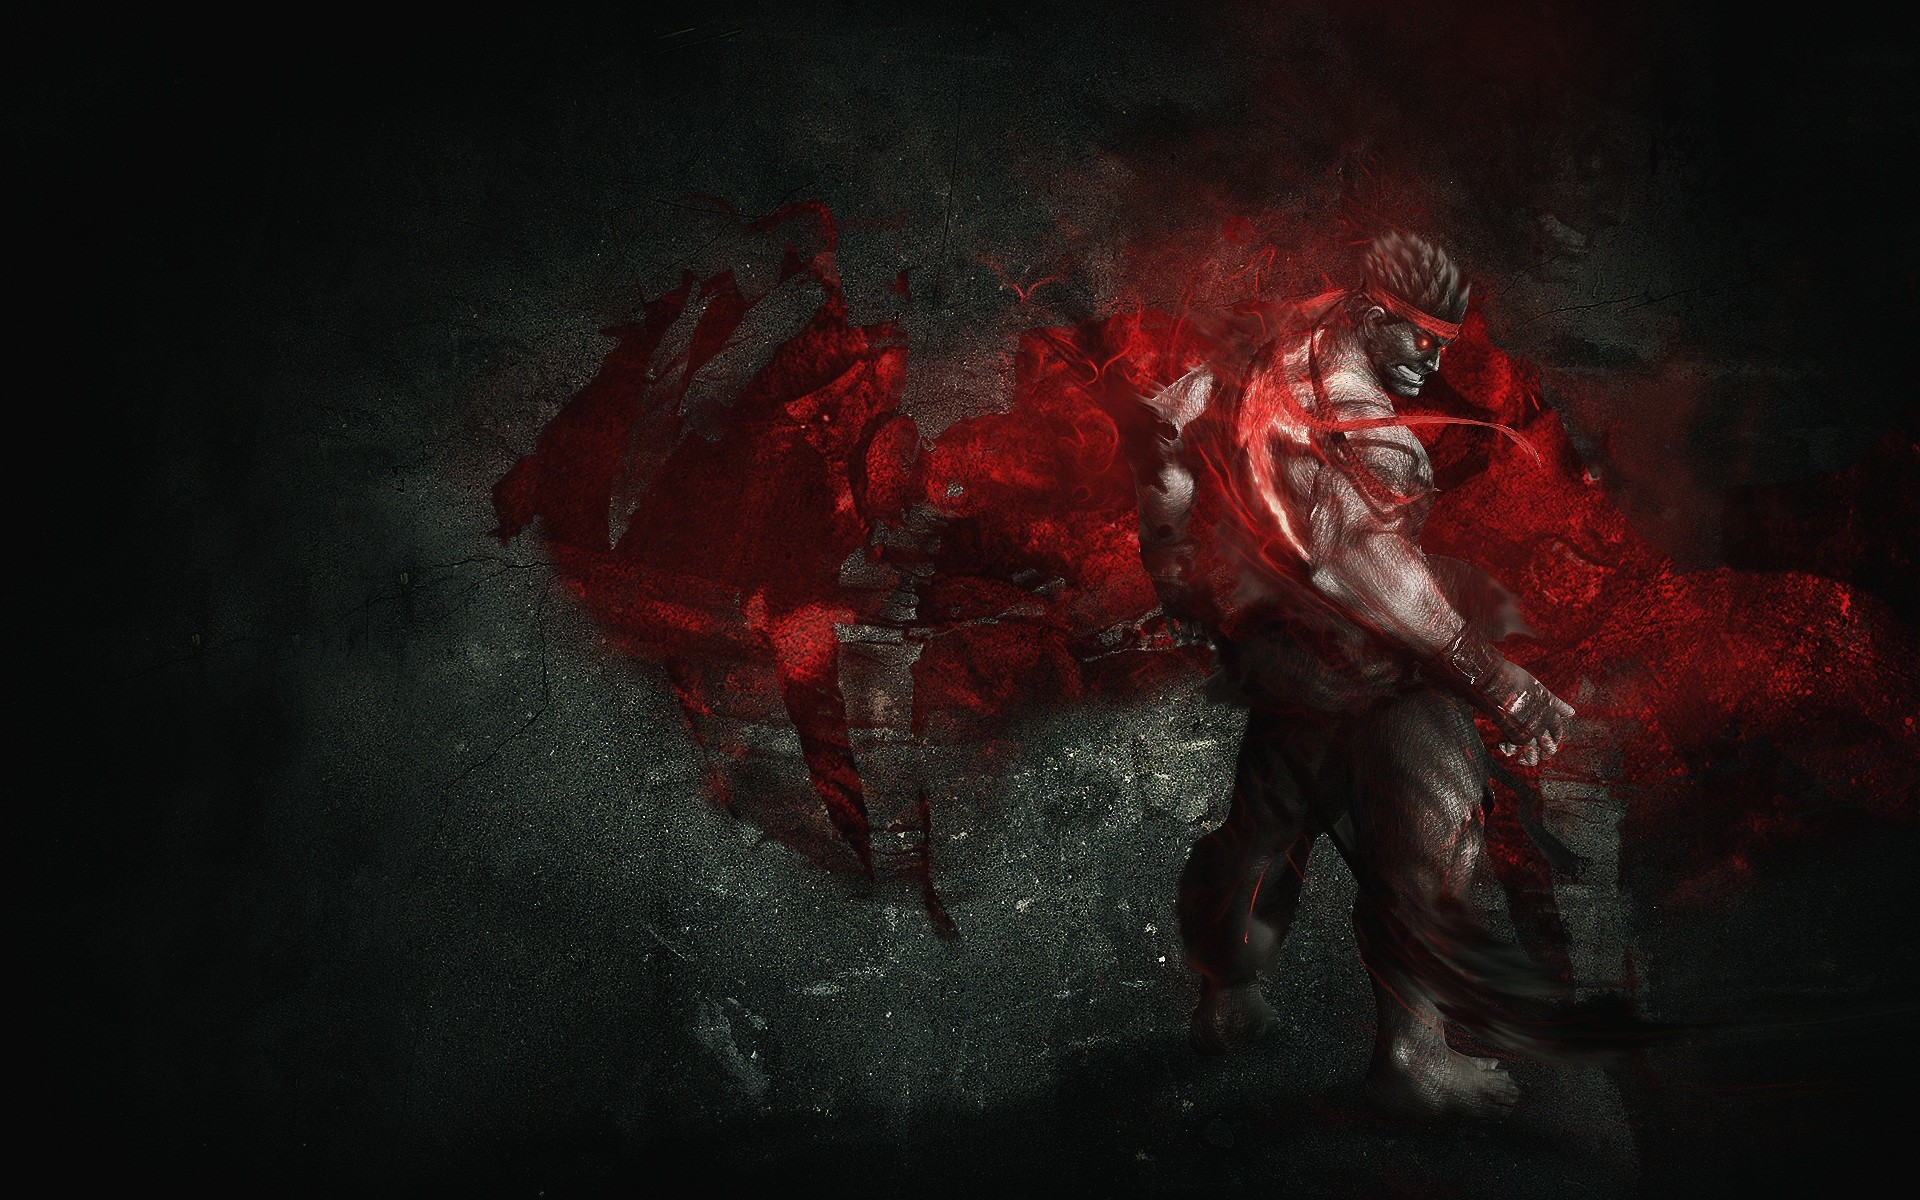 1920x1200 Ryu Street Wallpaper  Ryu, Street, Fighter, IV, Artwork, Evil .